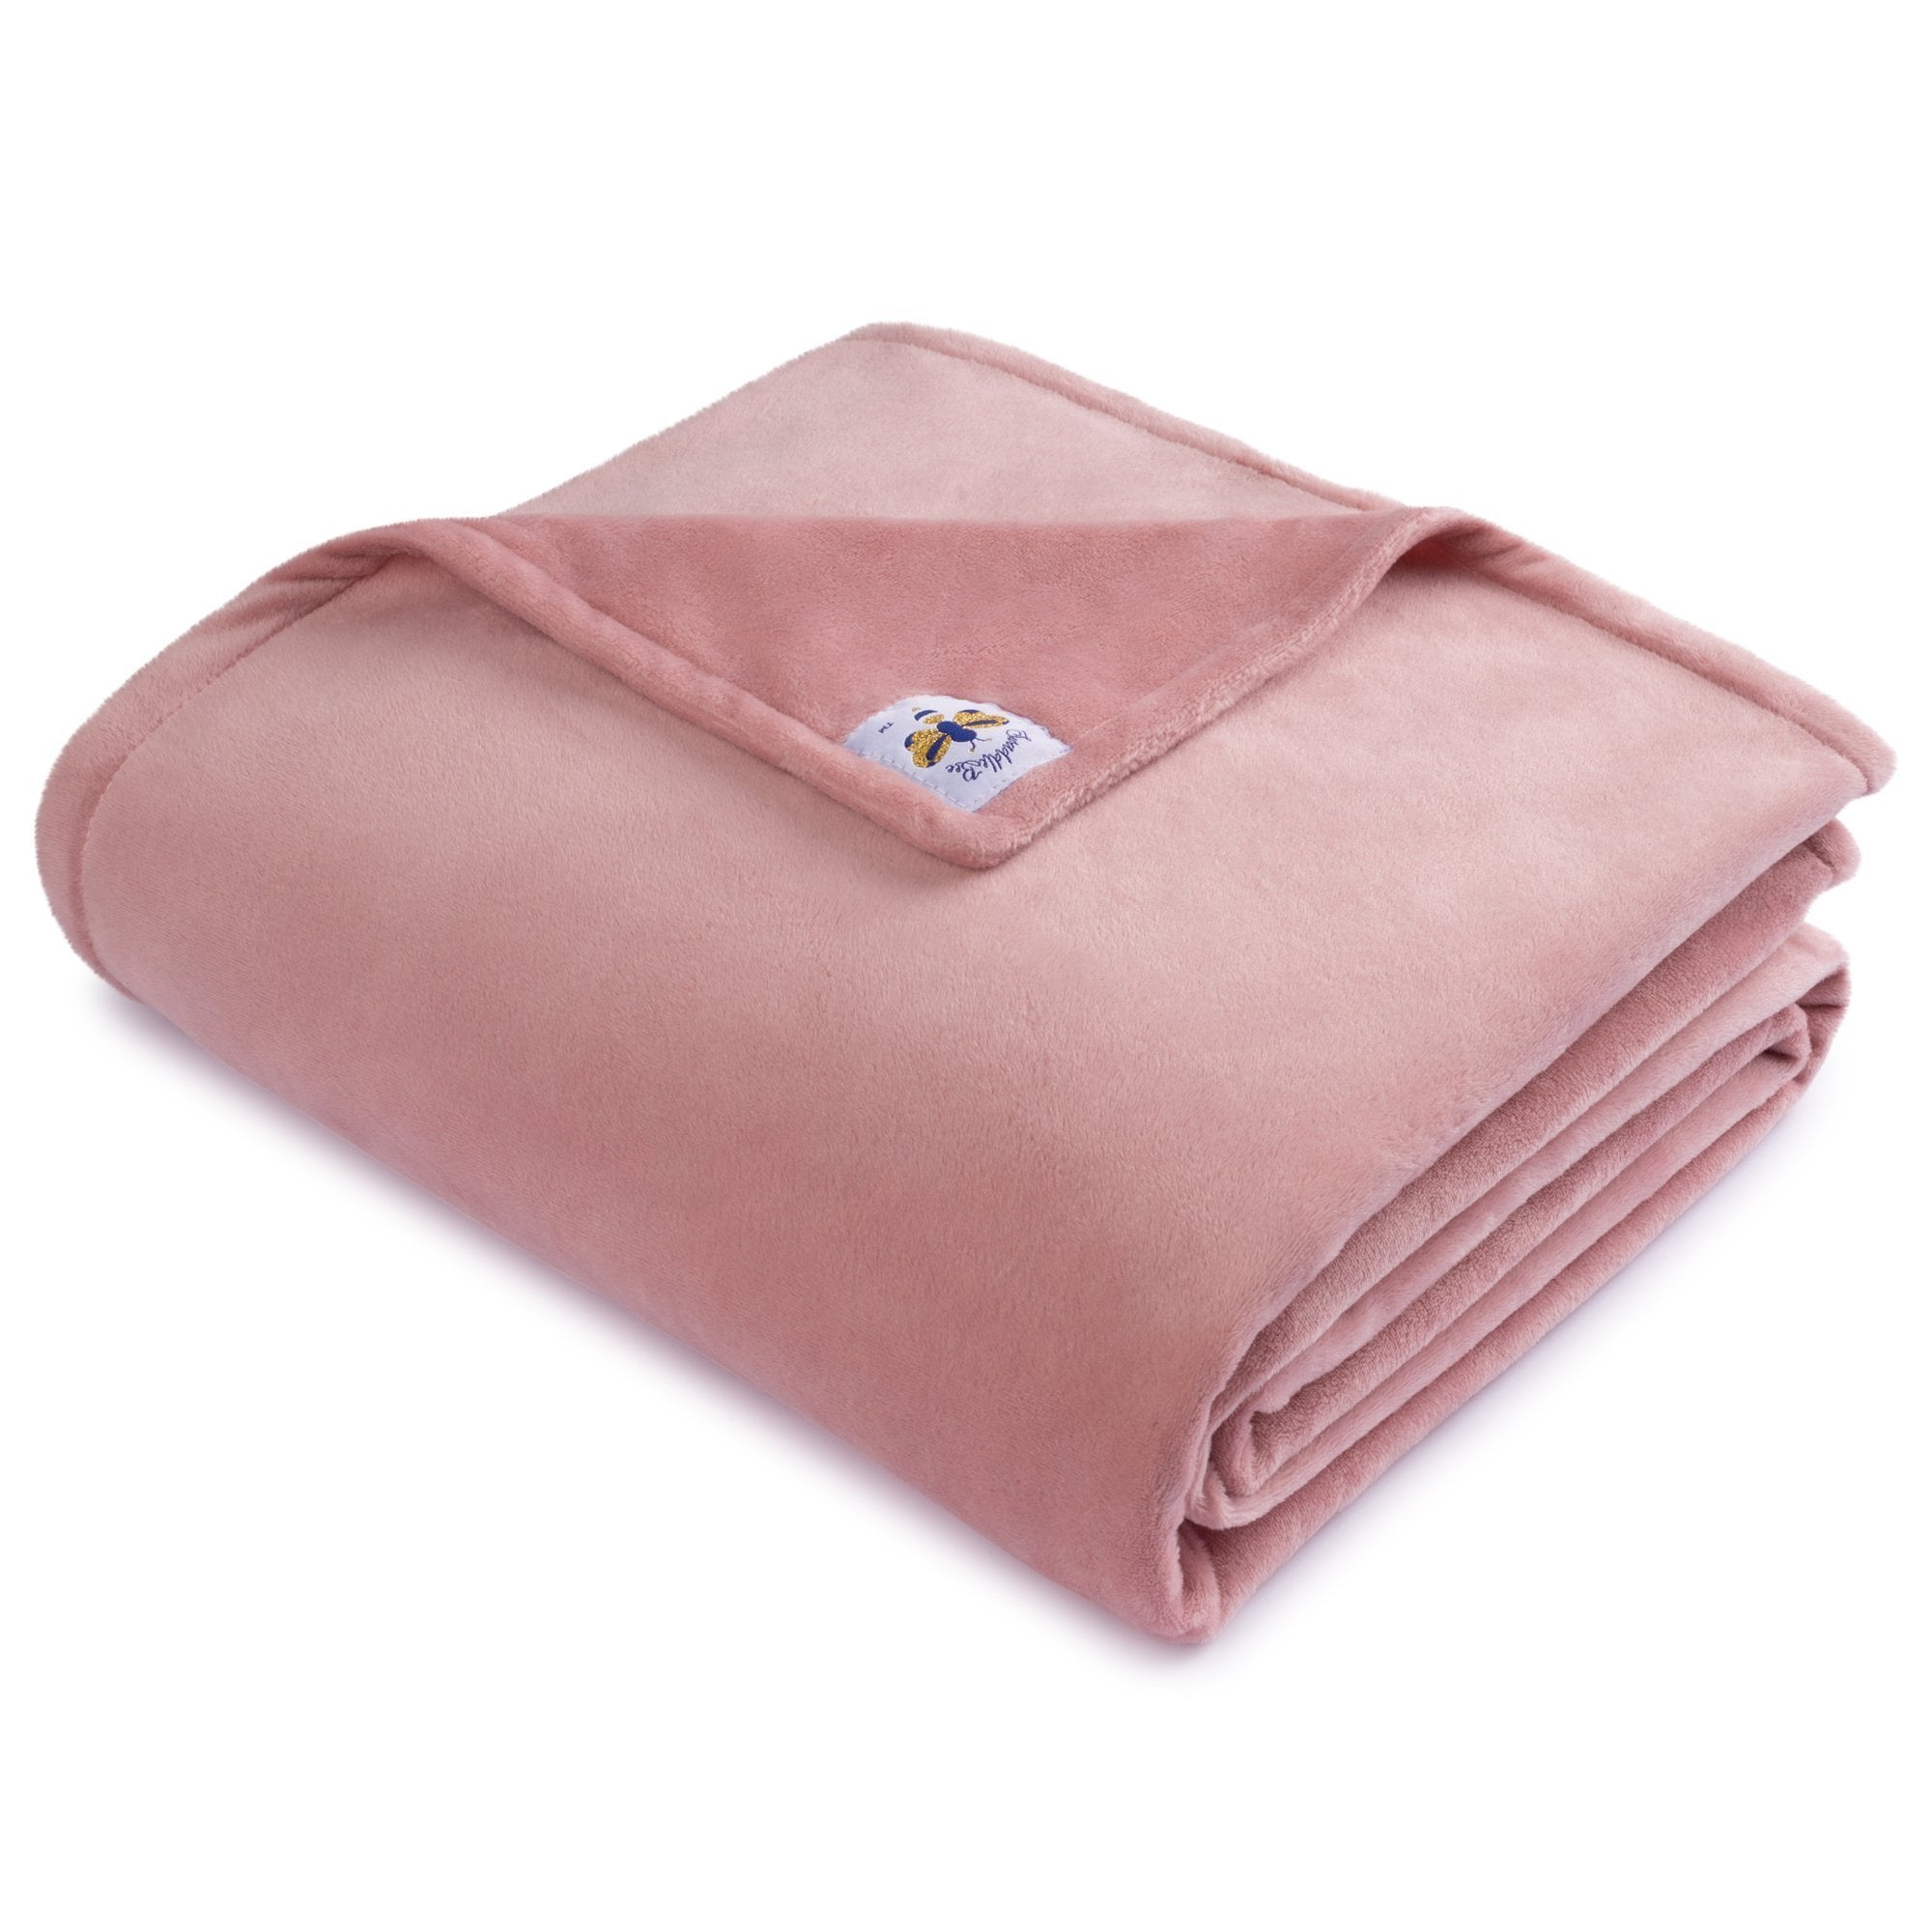 BiggerBee Minky Throw Blanket Solid Dusty Pink